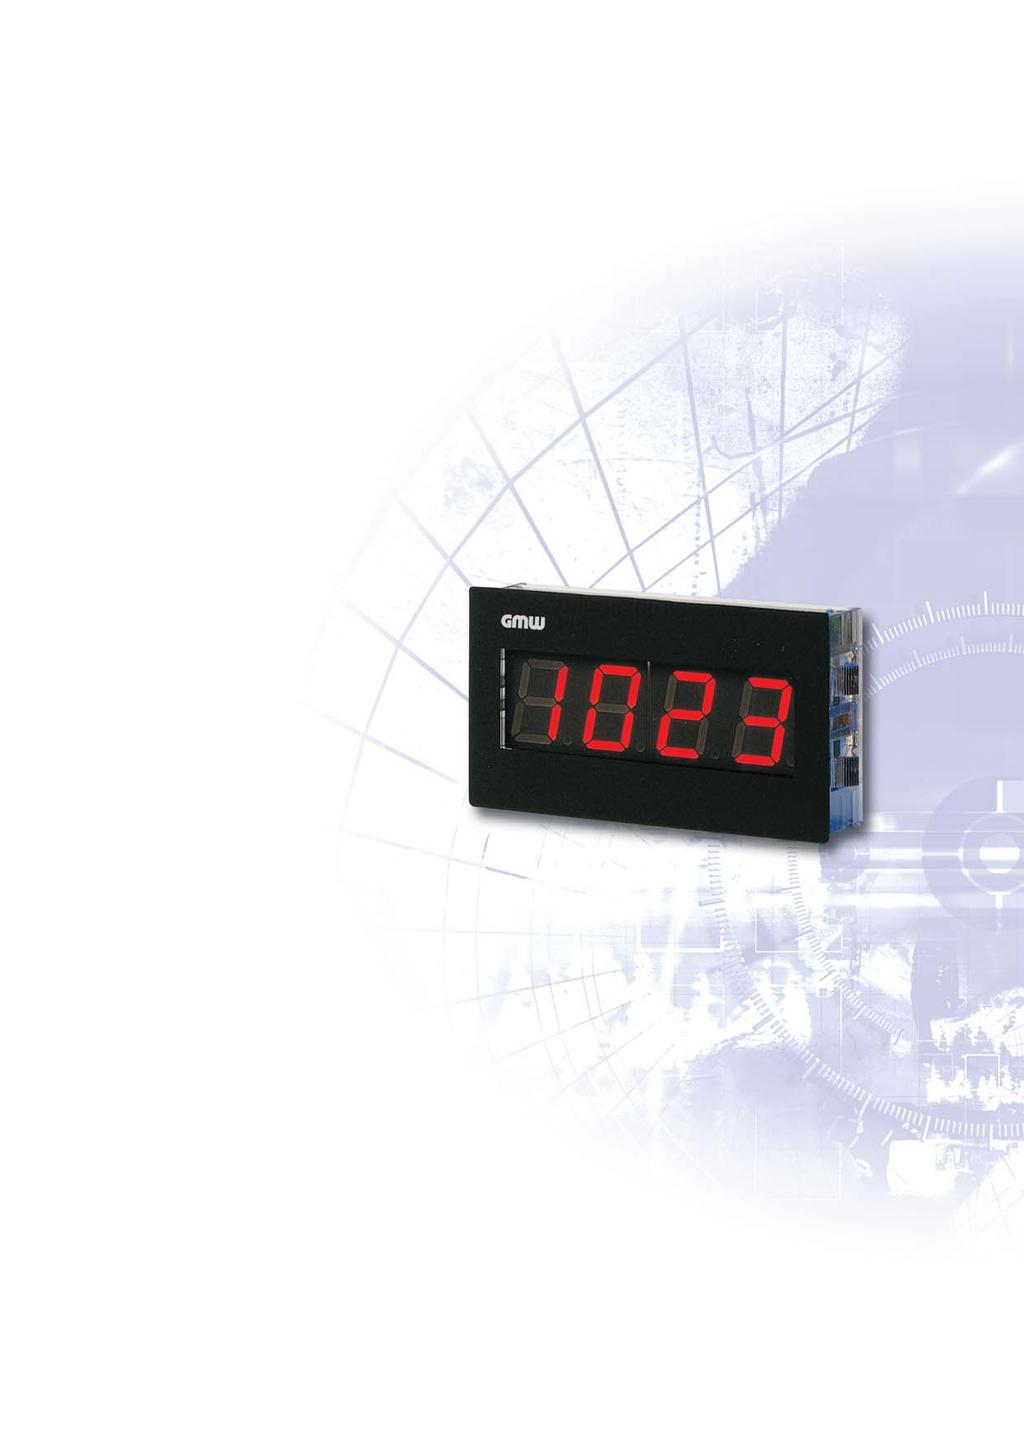 DIGEM 62 x 38 A5 3.5 Place Digital Indicator with LED or LCD A1155 range: ± 1 999 Minimal installation depth of only 26.